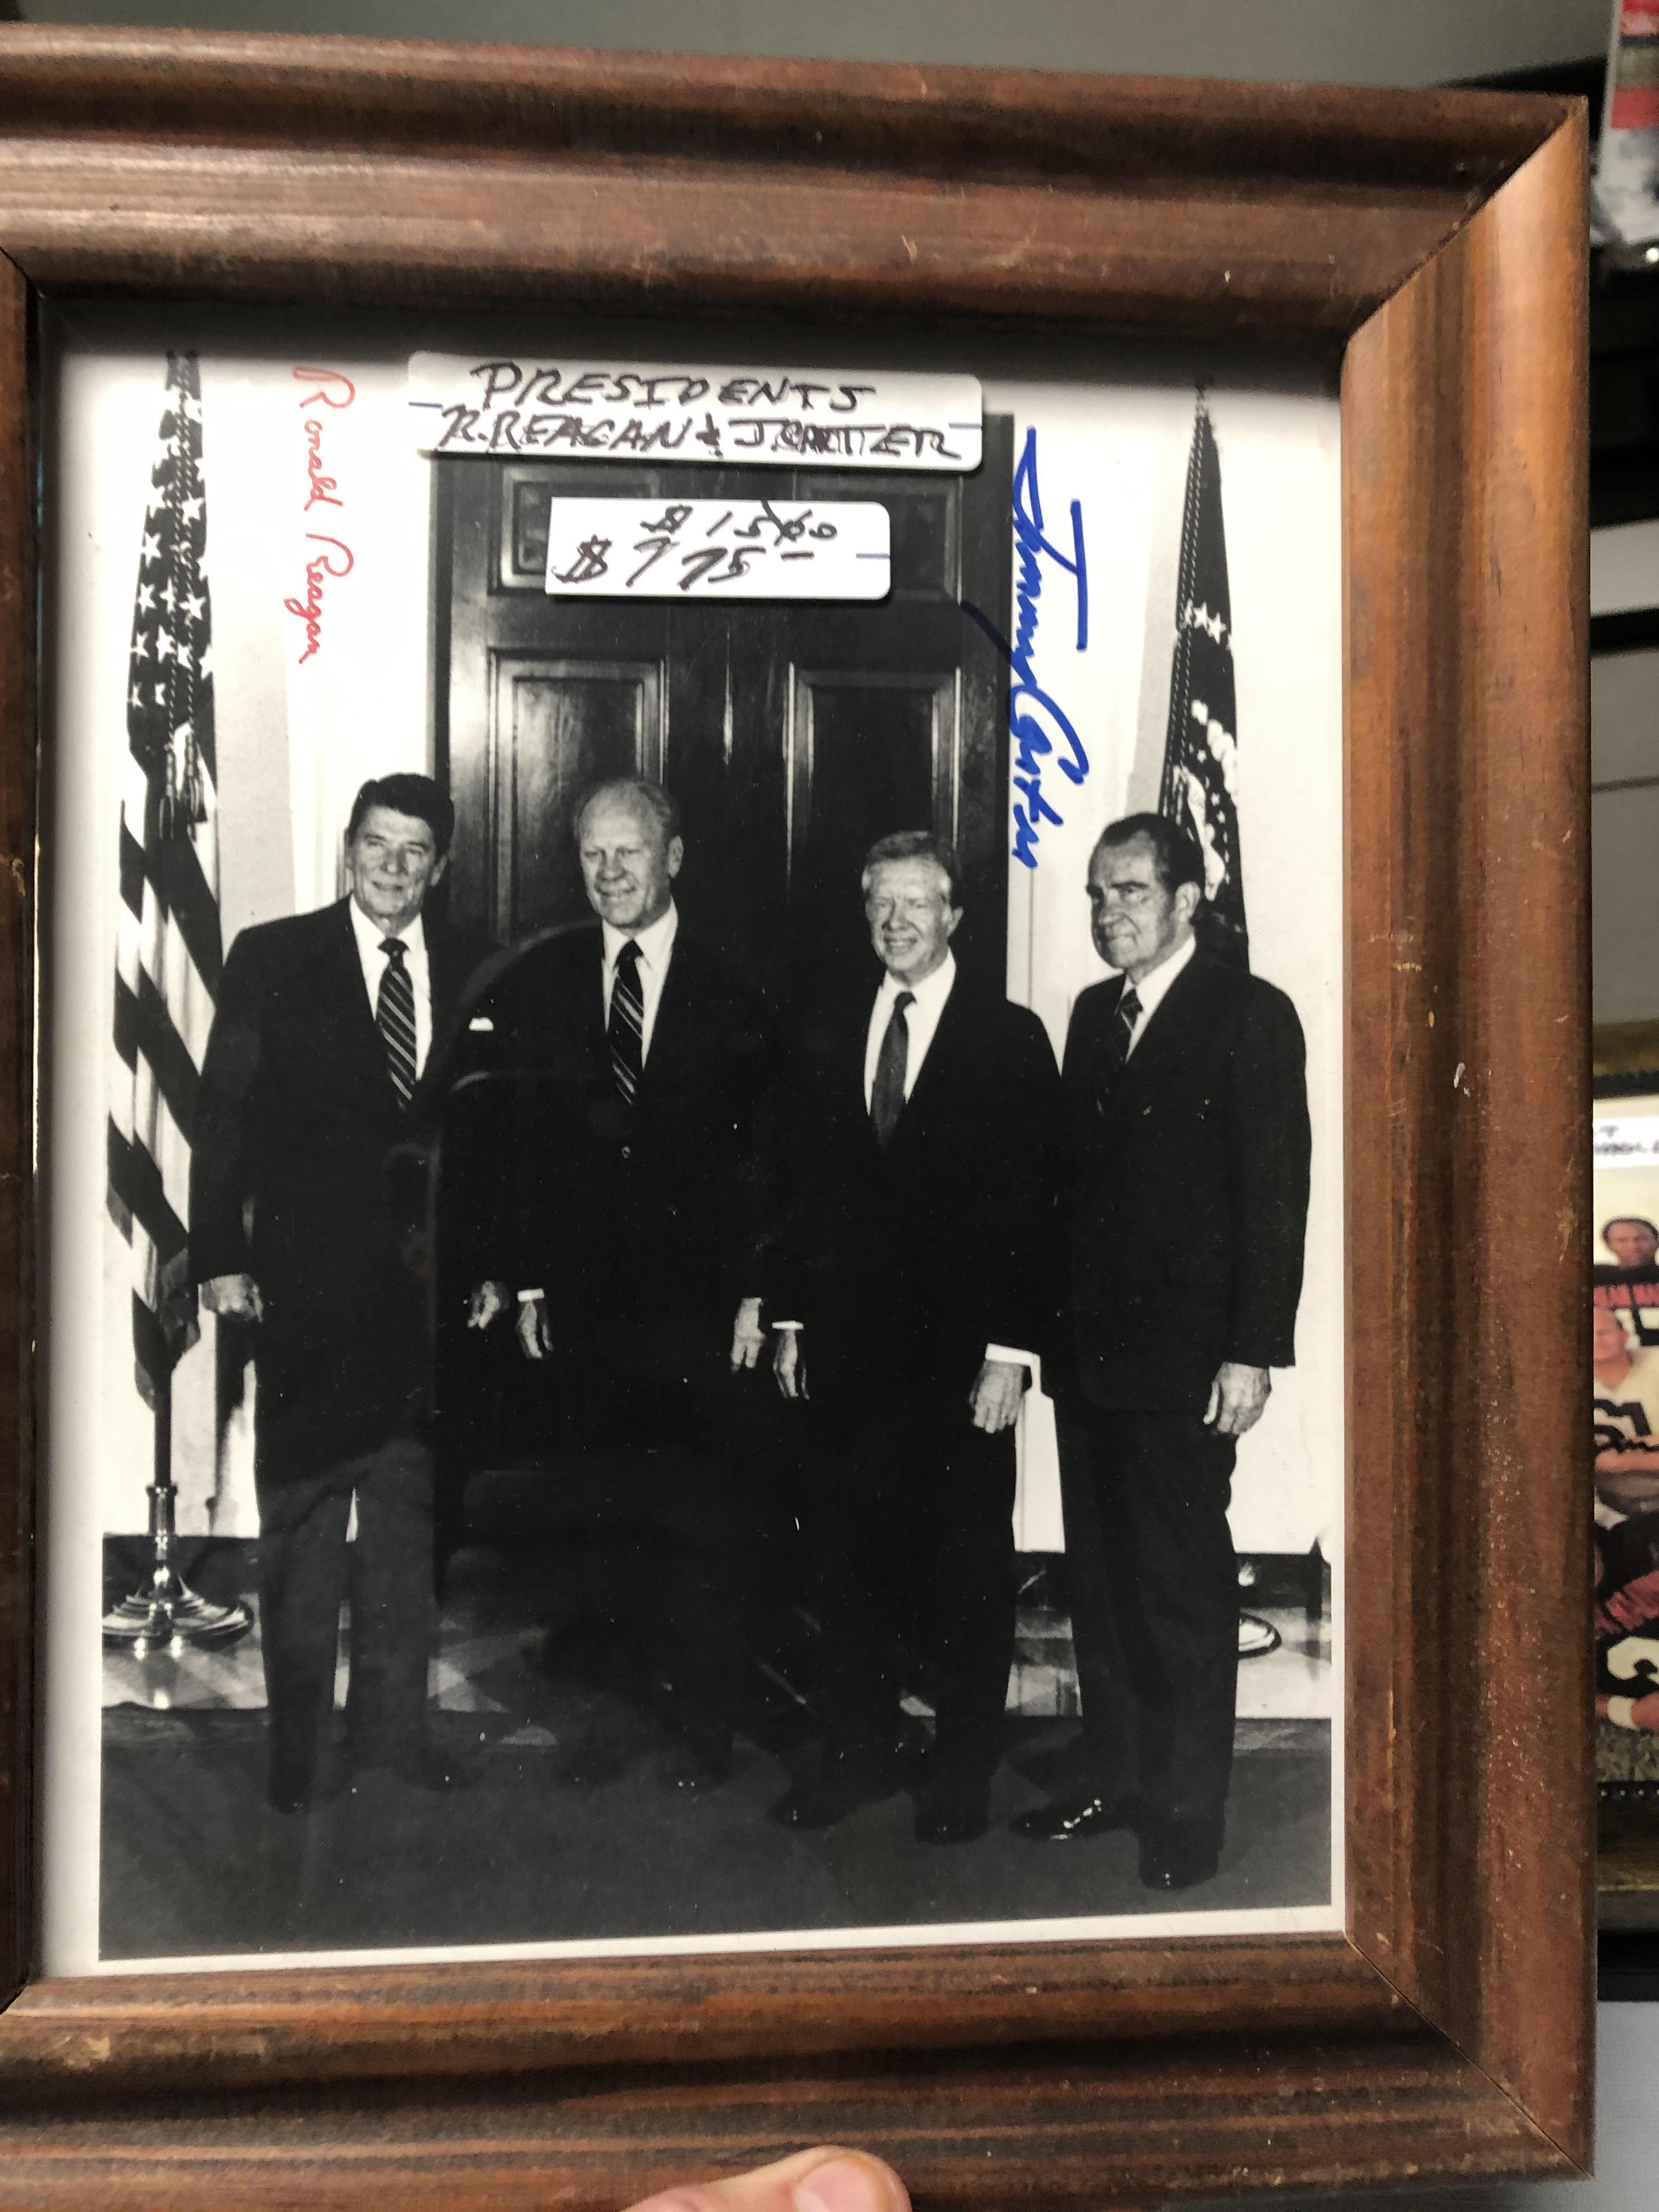 Ronald Reagan and Jimmy Carter framed autographed photo - Rare!